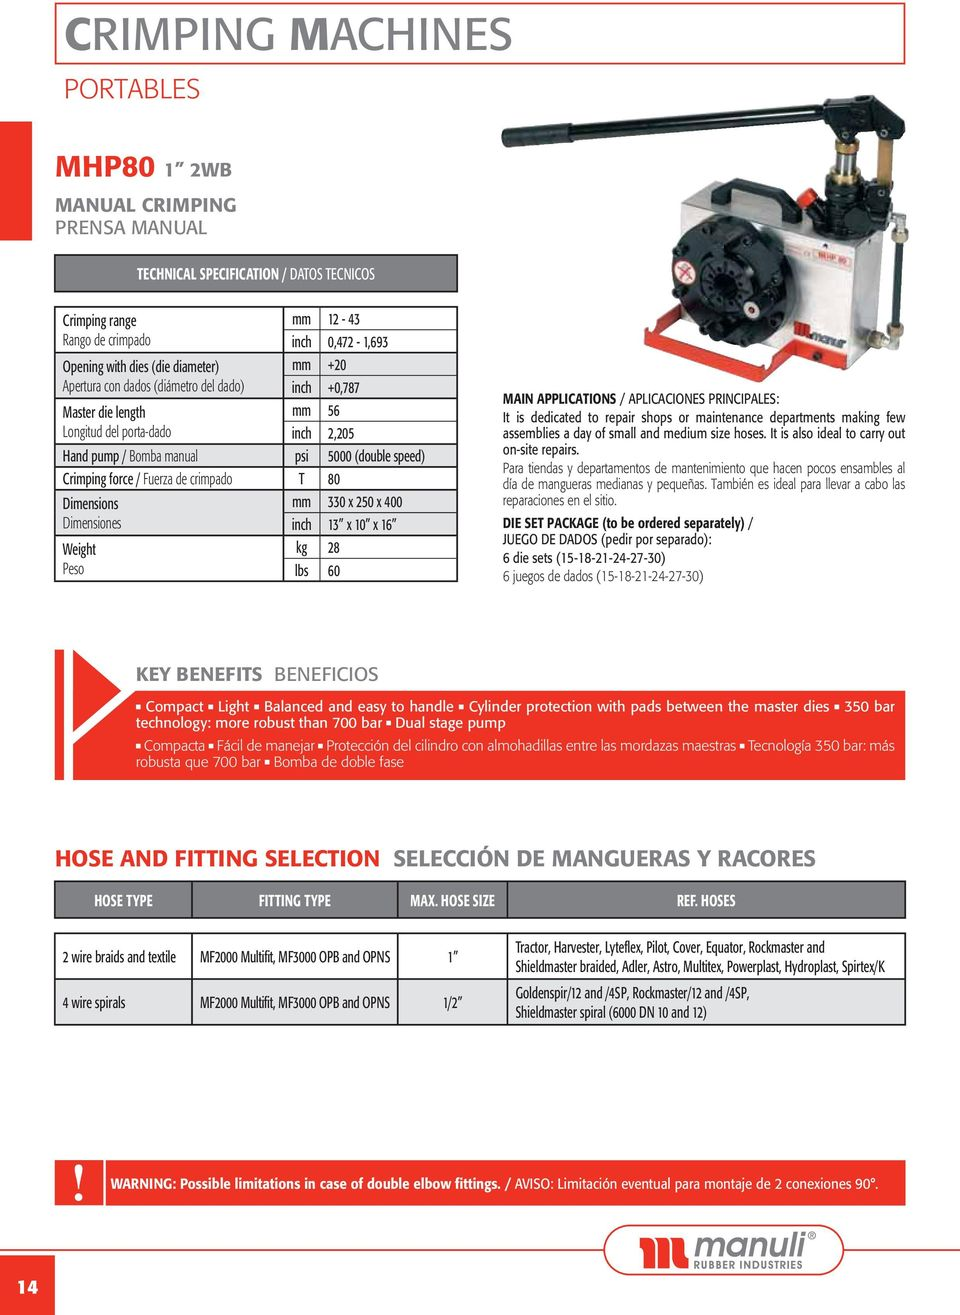 crimpado T 80 Dimensions Dimensiones Weight Peso mm 330 x 250 x 400 inch 13 x 10 x 16 kg 28 lbs 60 MAIN APPLICATIONS / APLICACIONES PRINCIPALES: It is dedicated to repair shops or maintenance